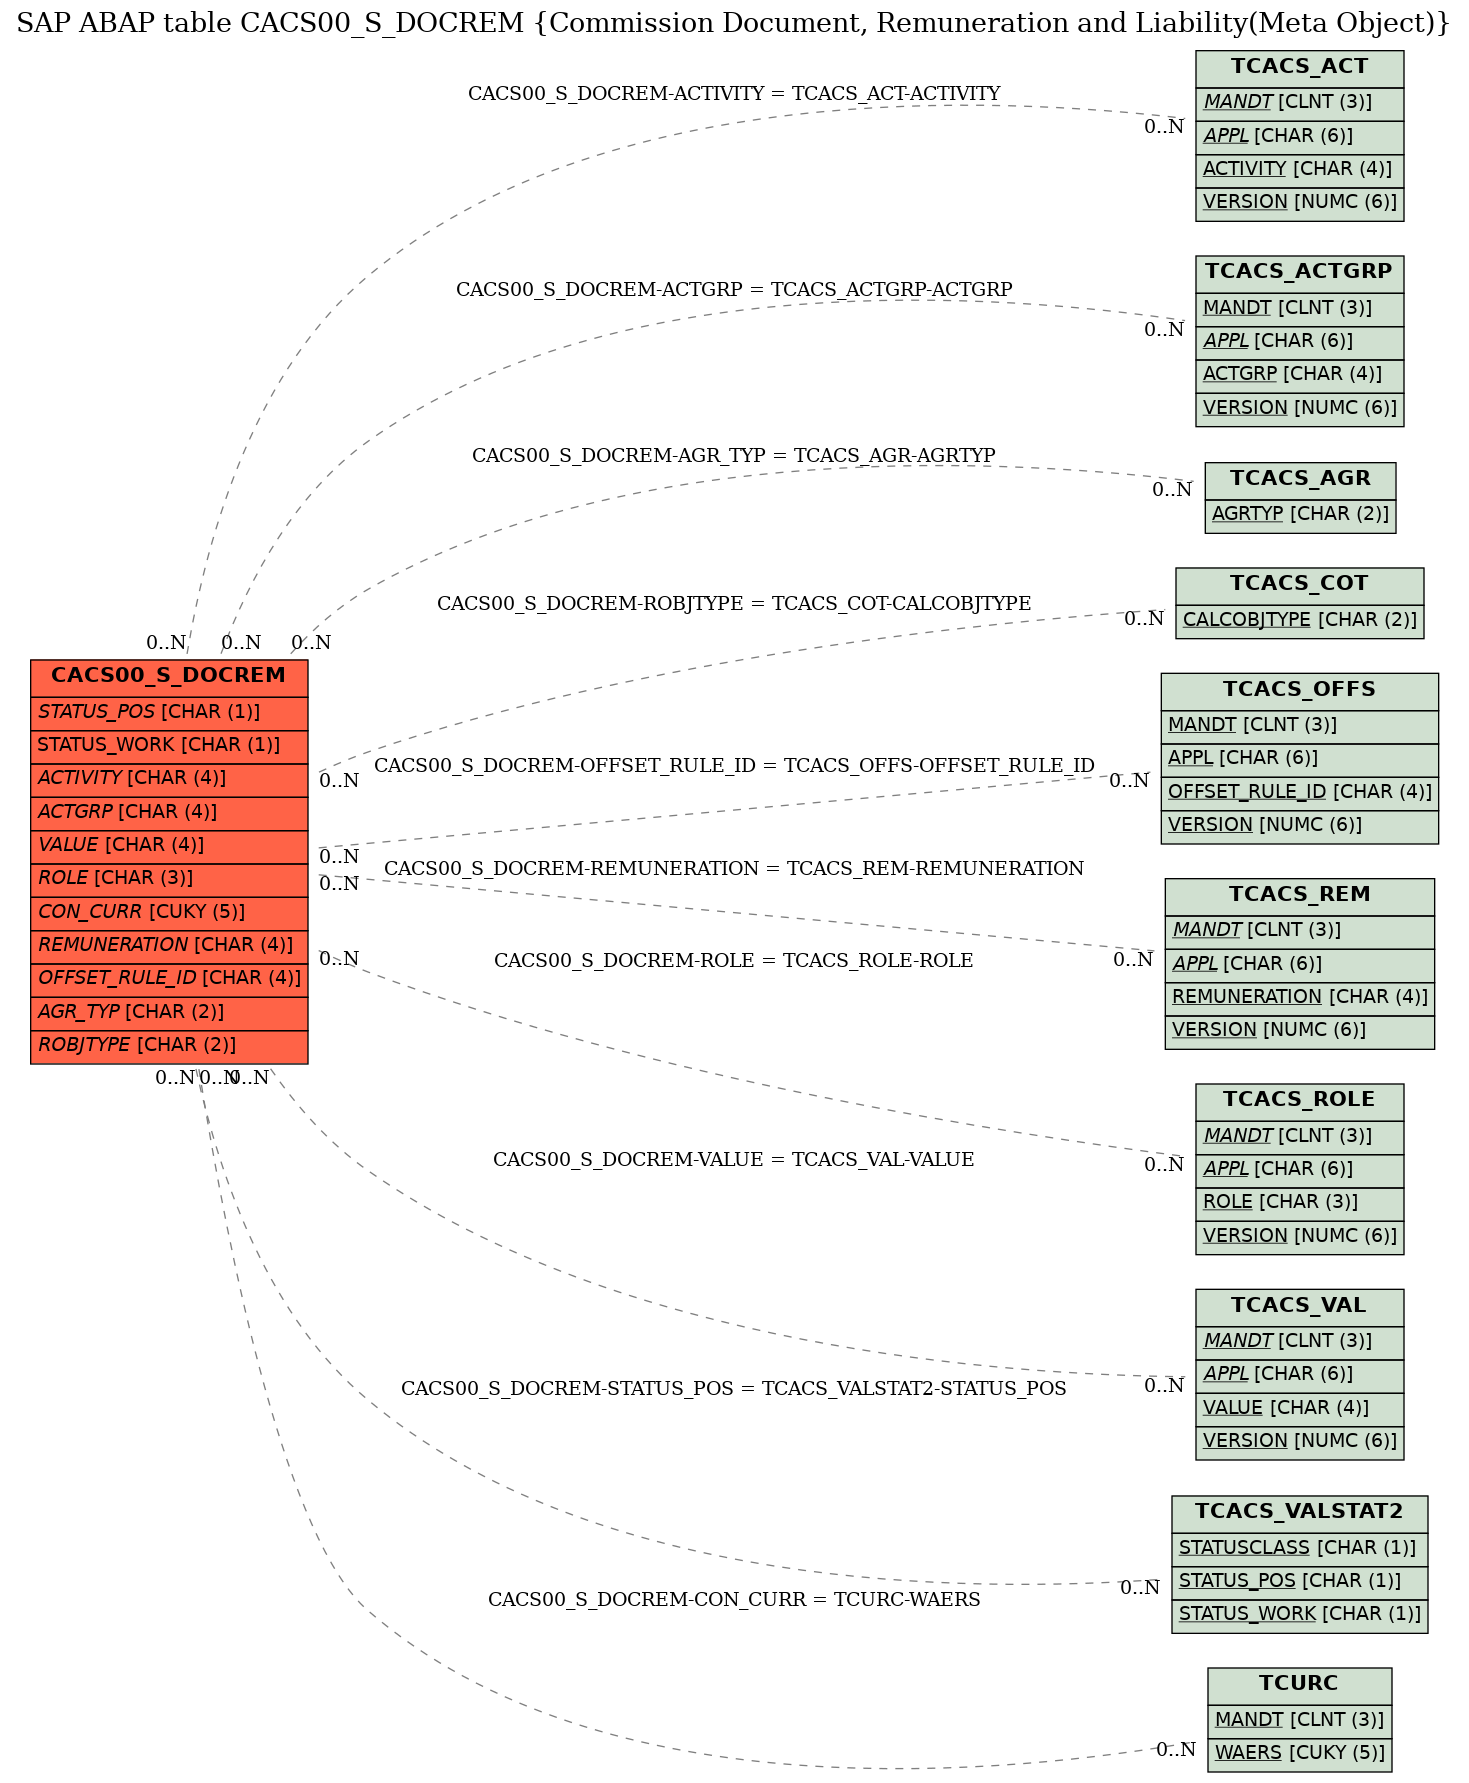 E-R Diagram for table CACS00_S_DOCREM (Commission Document, Remuneration and Liability(Meta Object))